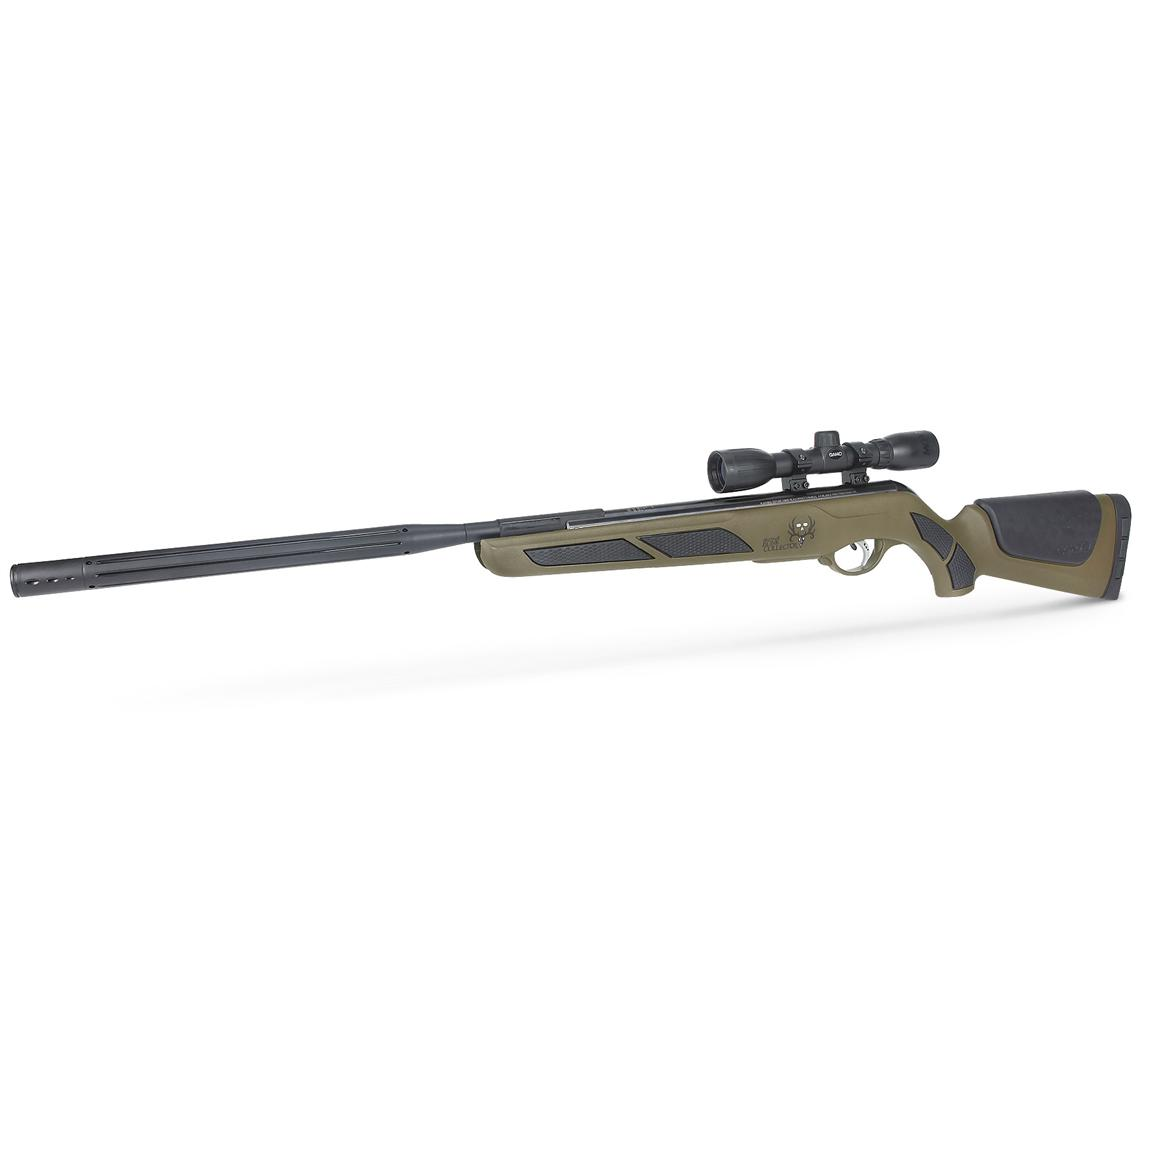 Bone Collector™ Bull Whisper™ .177 cal. Air Rifle with Scope, Forest Green